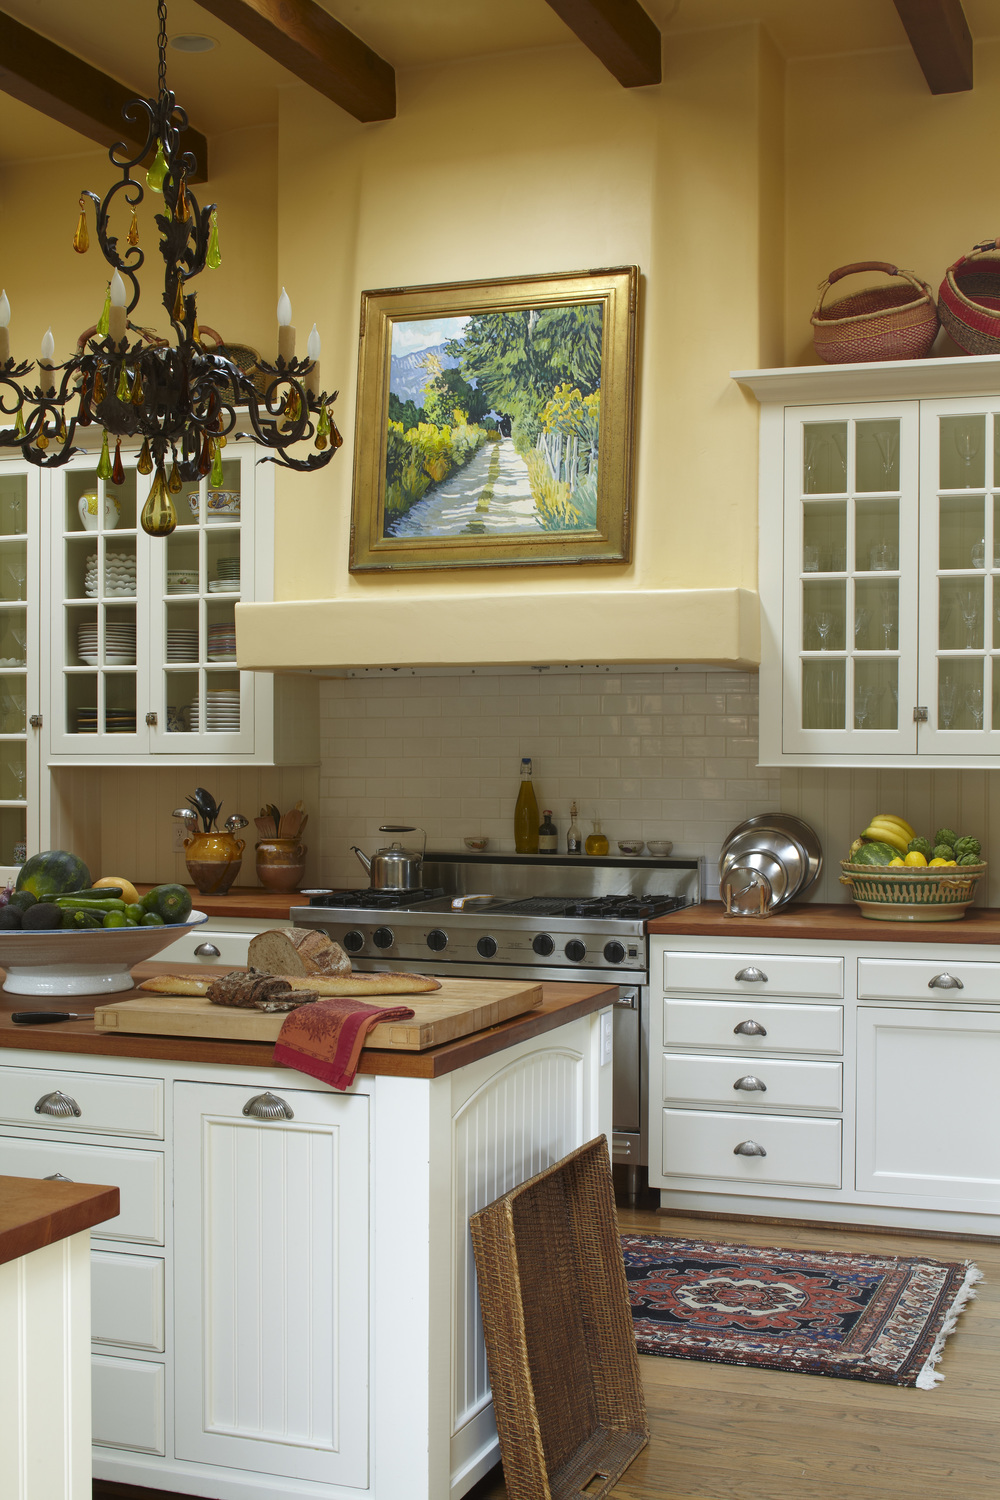 Kitchen0153.jpg